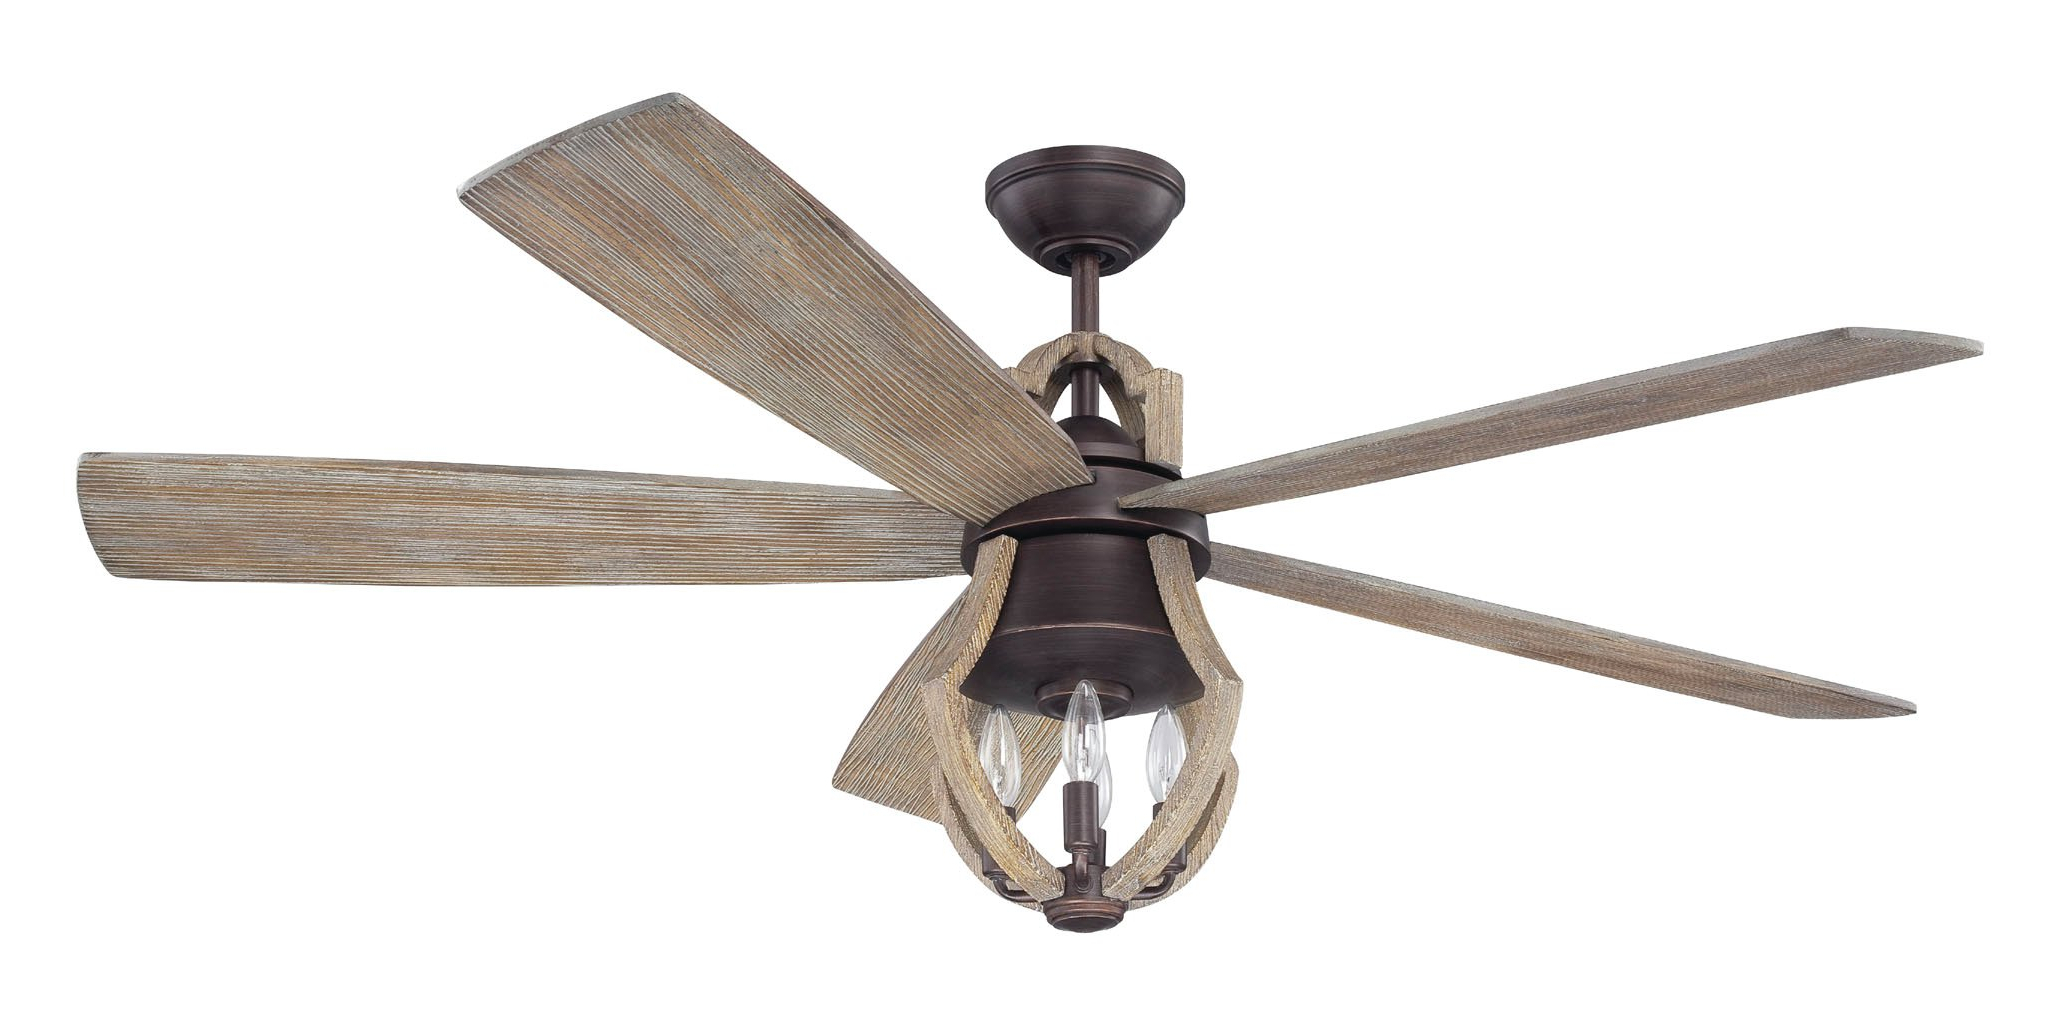 Wayfair Intended For 2019 Fredericksen 5 Blade Ceiling Fans (View 10 of 20)